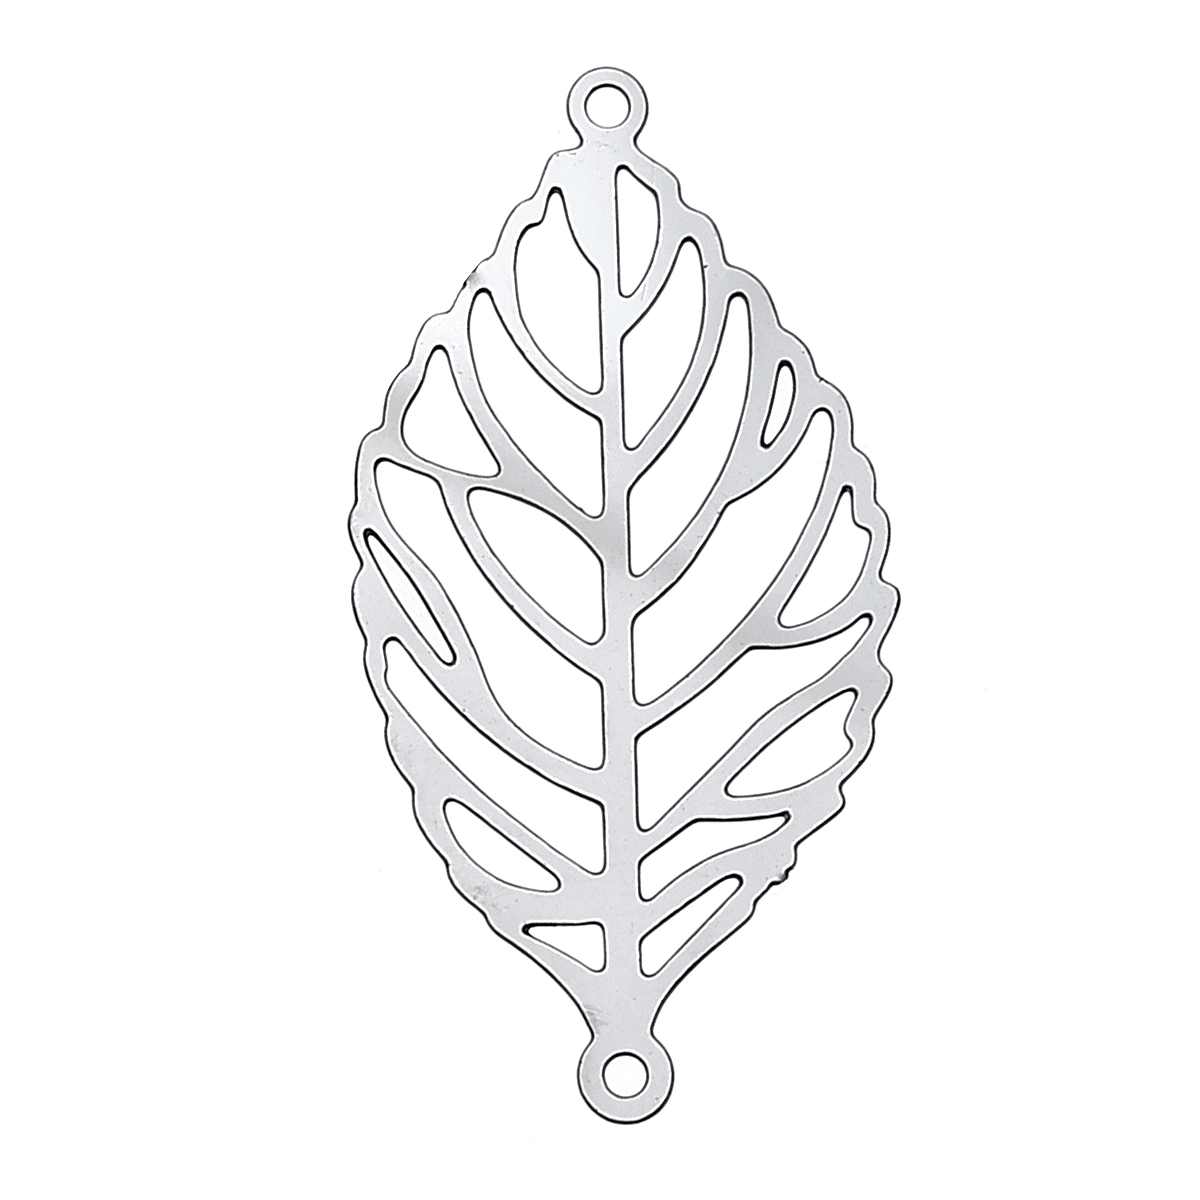 DoreenBeads Filigree Stainless Steel Connectors Jewelry Findings Leaf Silver Tone 30 x 15mm, Hole: 1mm 1 Piece 2017 new doreenbeads filigree stainless steel connectors findings flower silver tone rose pattern hollow 24mm 1 x 24mm 1 2 pieces